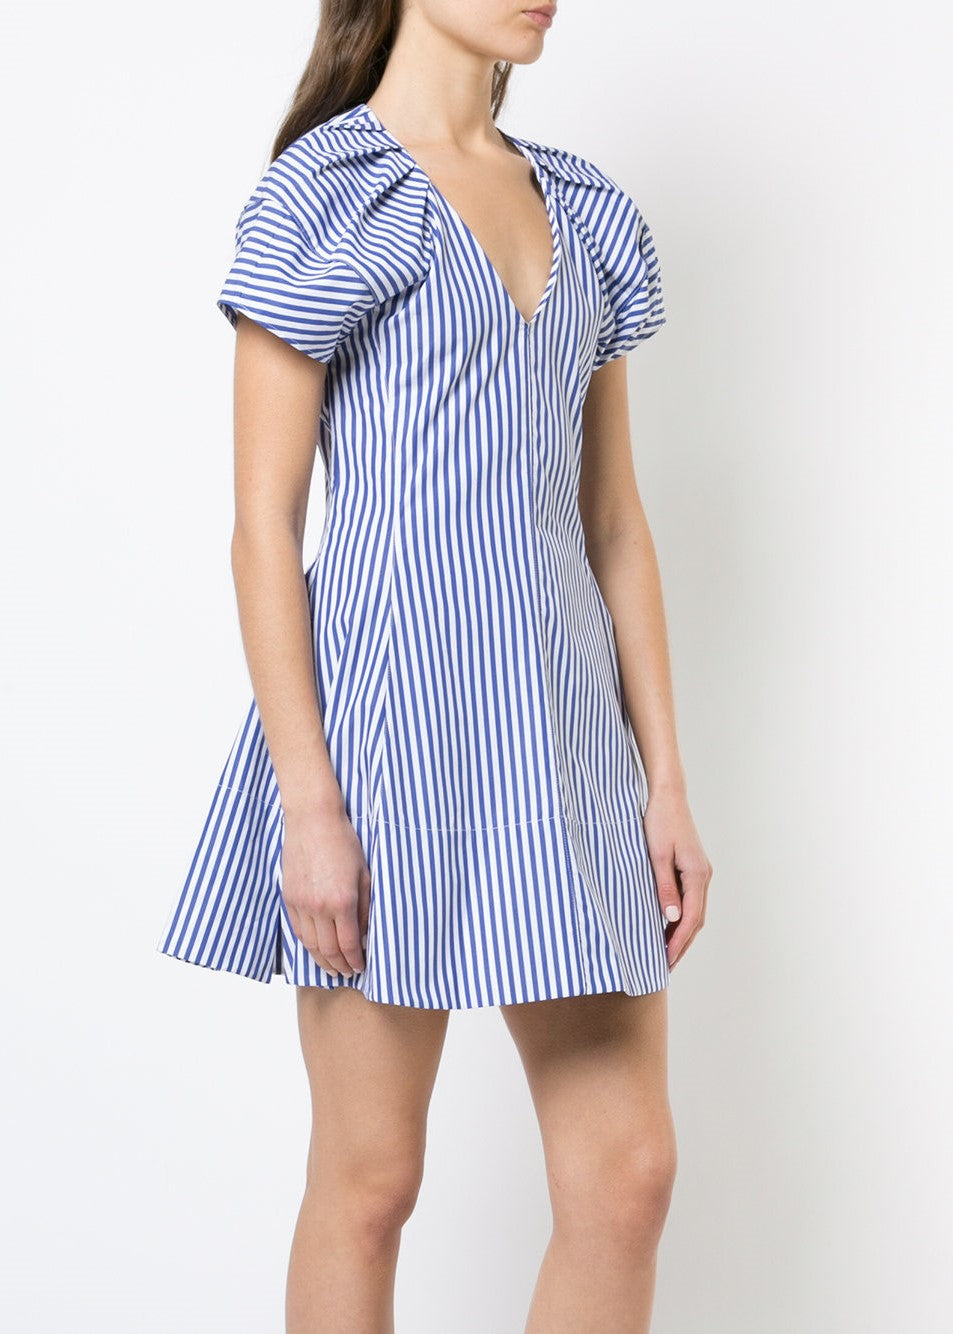 Khaite bianca dress royal/white stripe